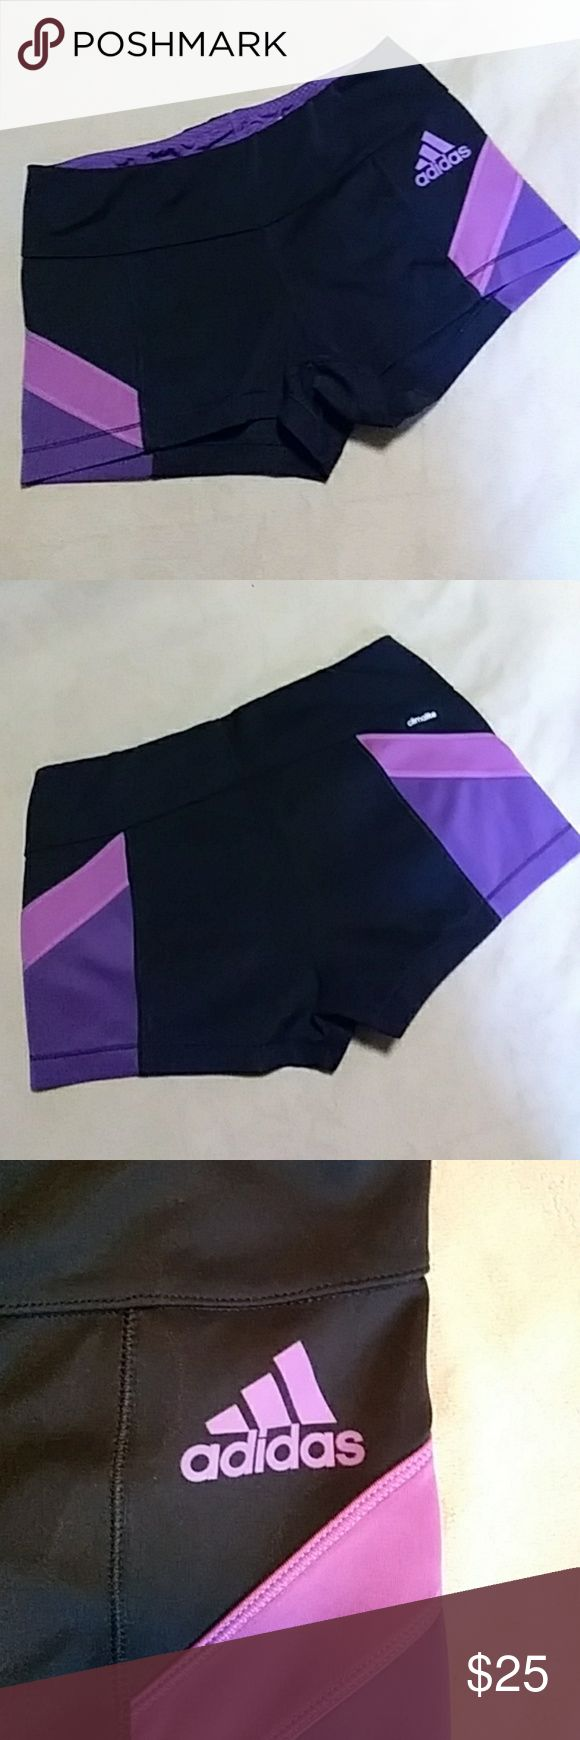 ADIDAS PURPLE AND BLACK GYM SHORTS EUC (Excellent Used Condition) Nice pair of medium sized Adidas gym shorts! Cleaned and ready to wear. Measurements: Waist 13 inches (laying flat), Length 9.5 inches. Smoke free home. Sorry no trades. Buy it now or make an offer :) Bundle and $ave. Check out my other listings. FAST SHIPPING! ⭐⭐⭐⭐⭐Rated Seller Adidas Other